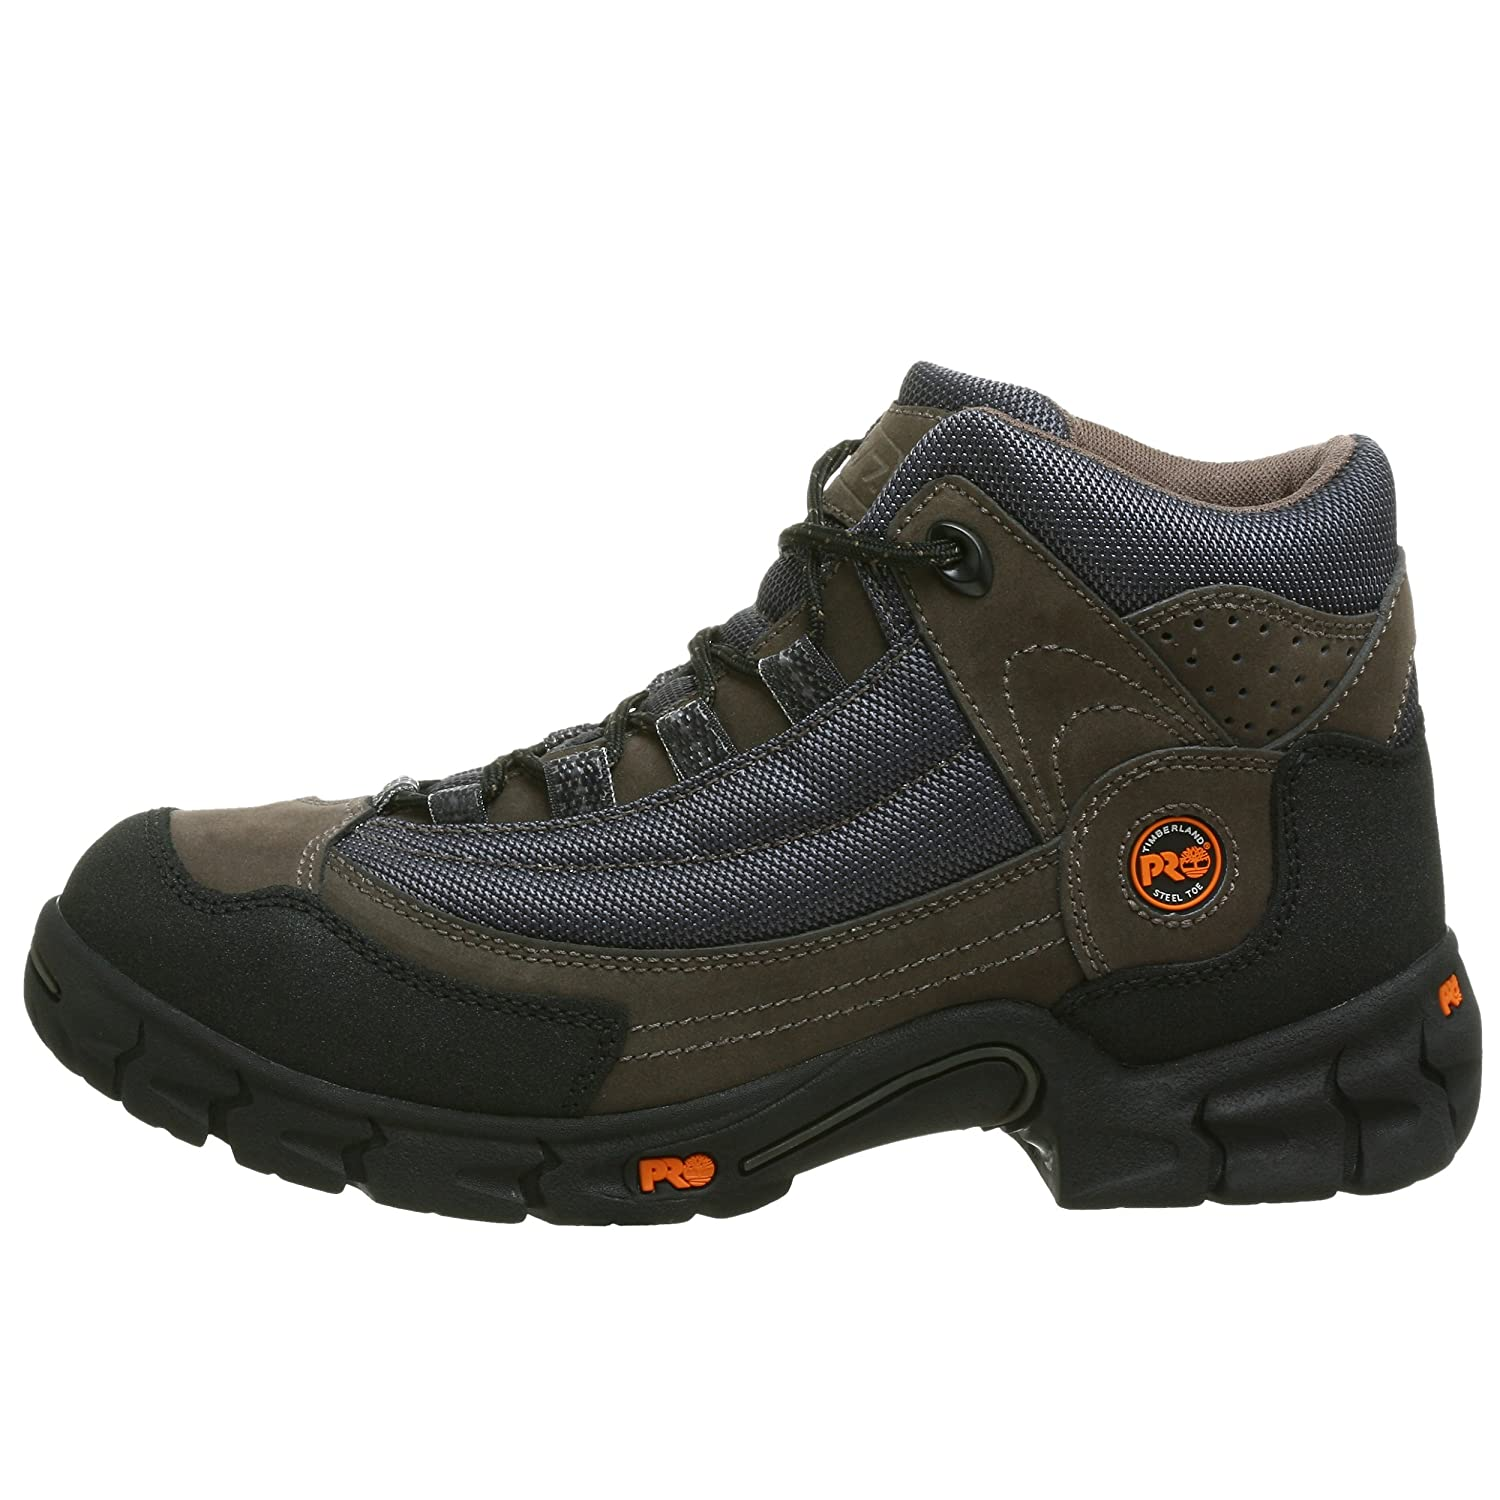 Timberland PRO Men's Expertise Hiker Steel-Toe Work Boot | Amazon.com